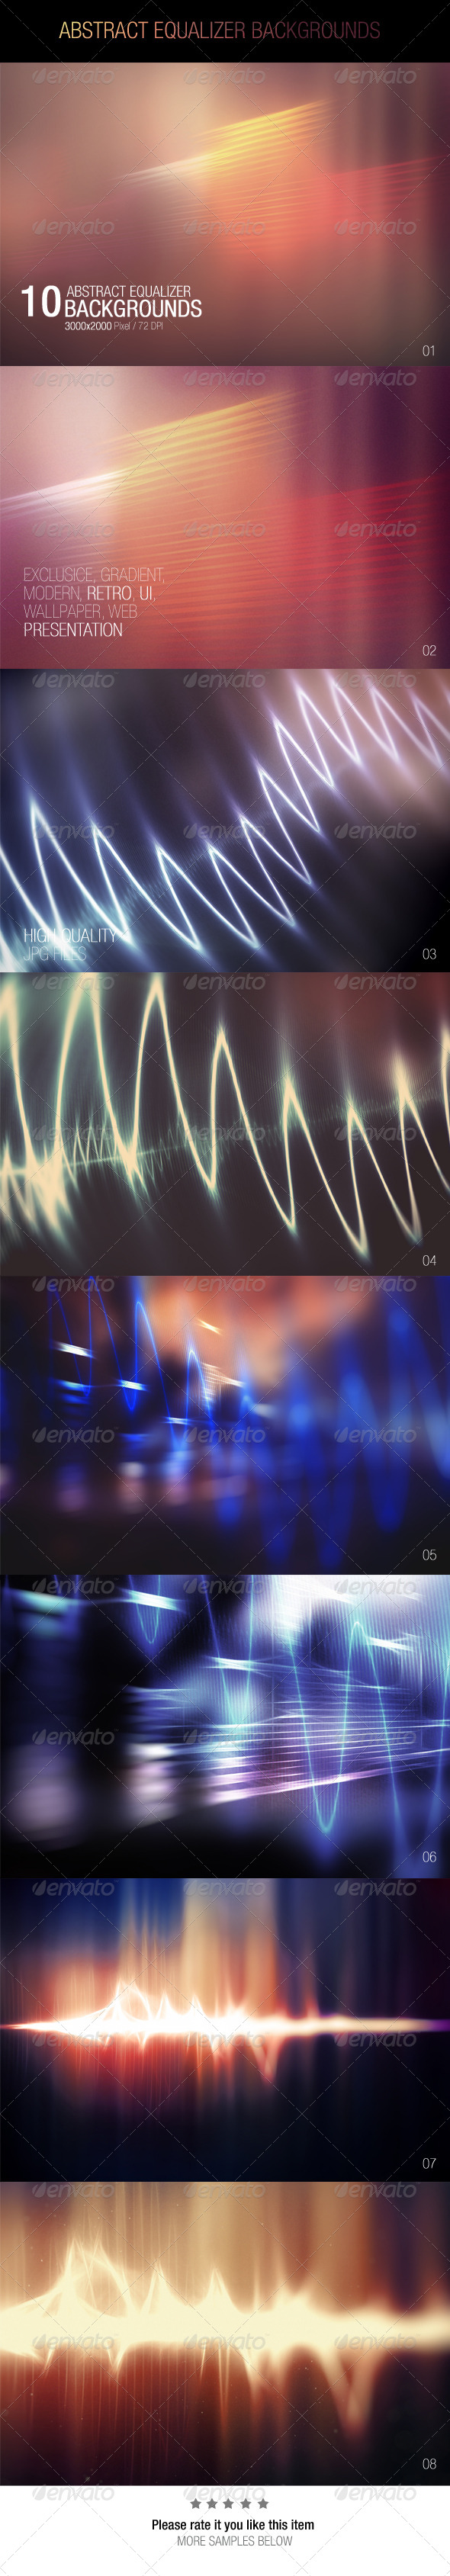 GraphicRiver Abstract Equalizer Backgrounds 7700675